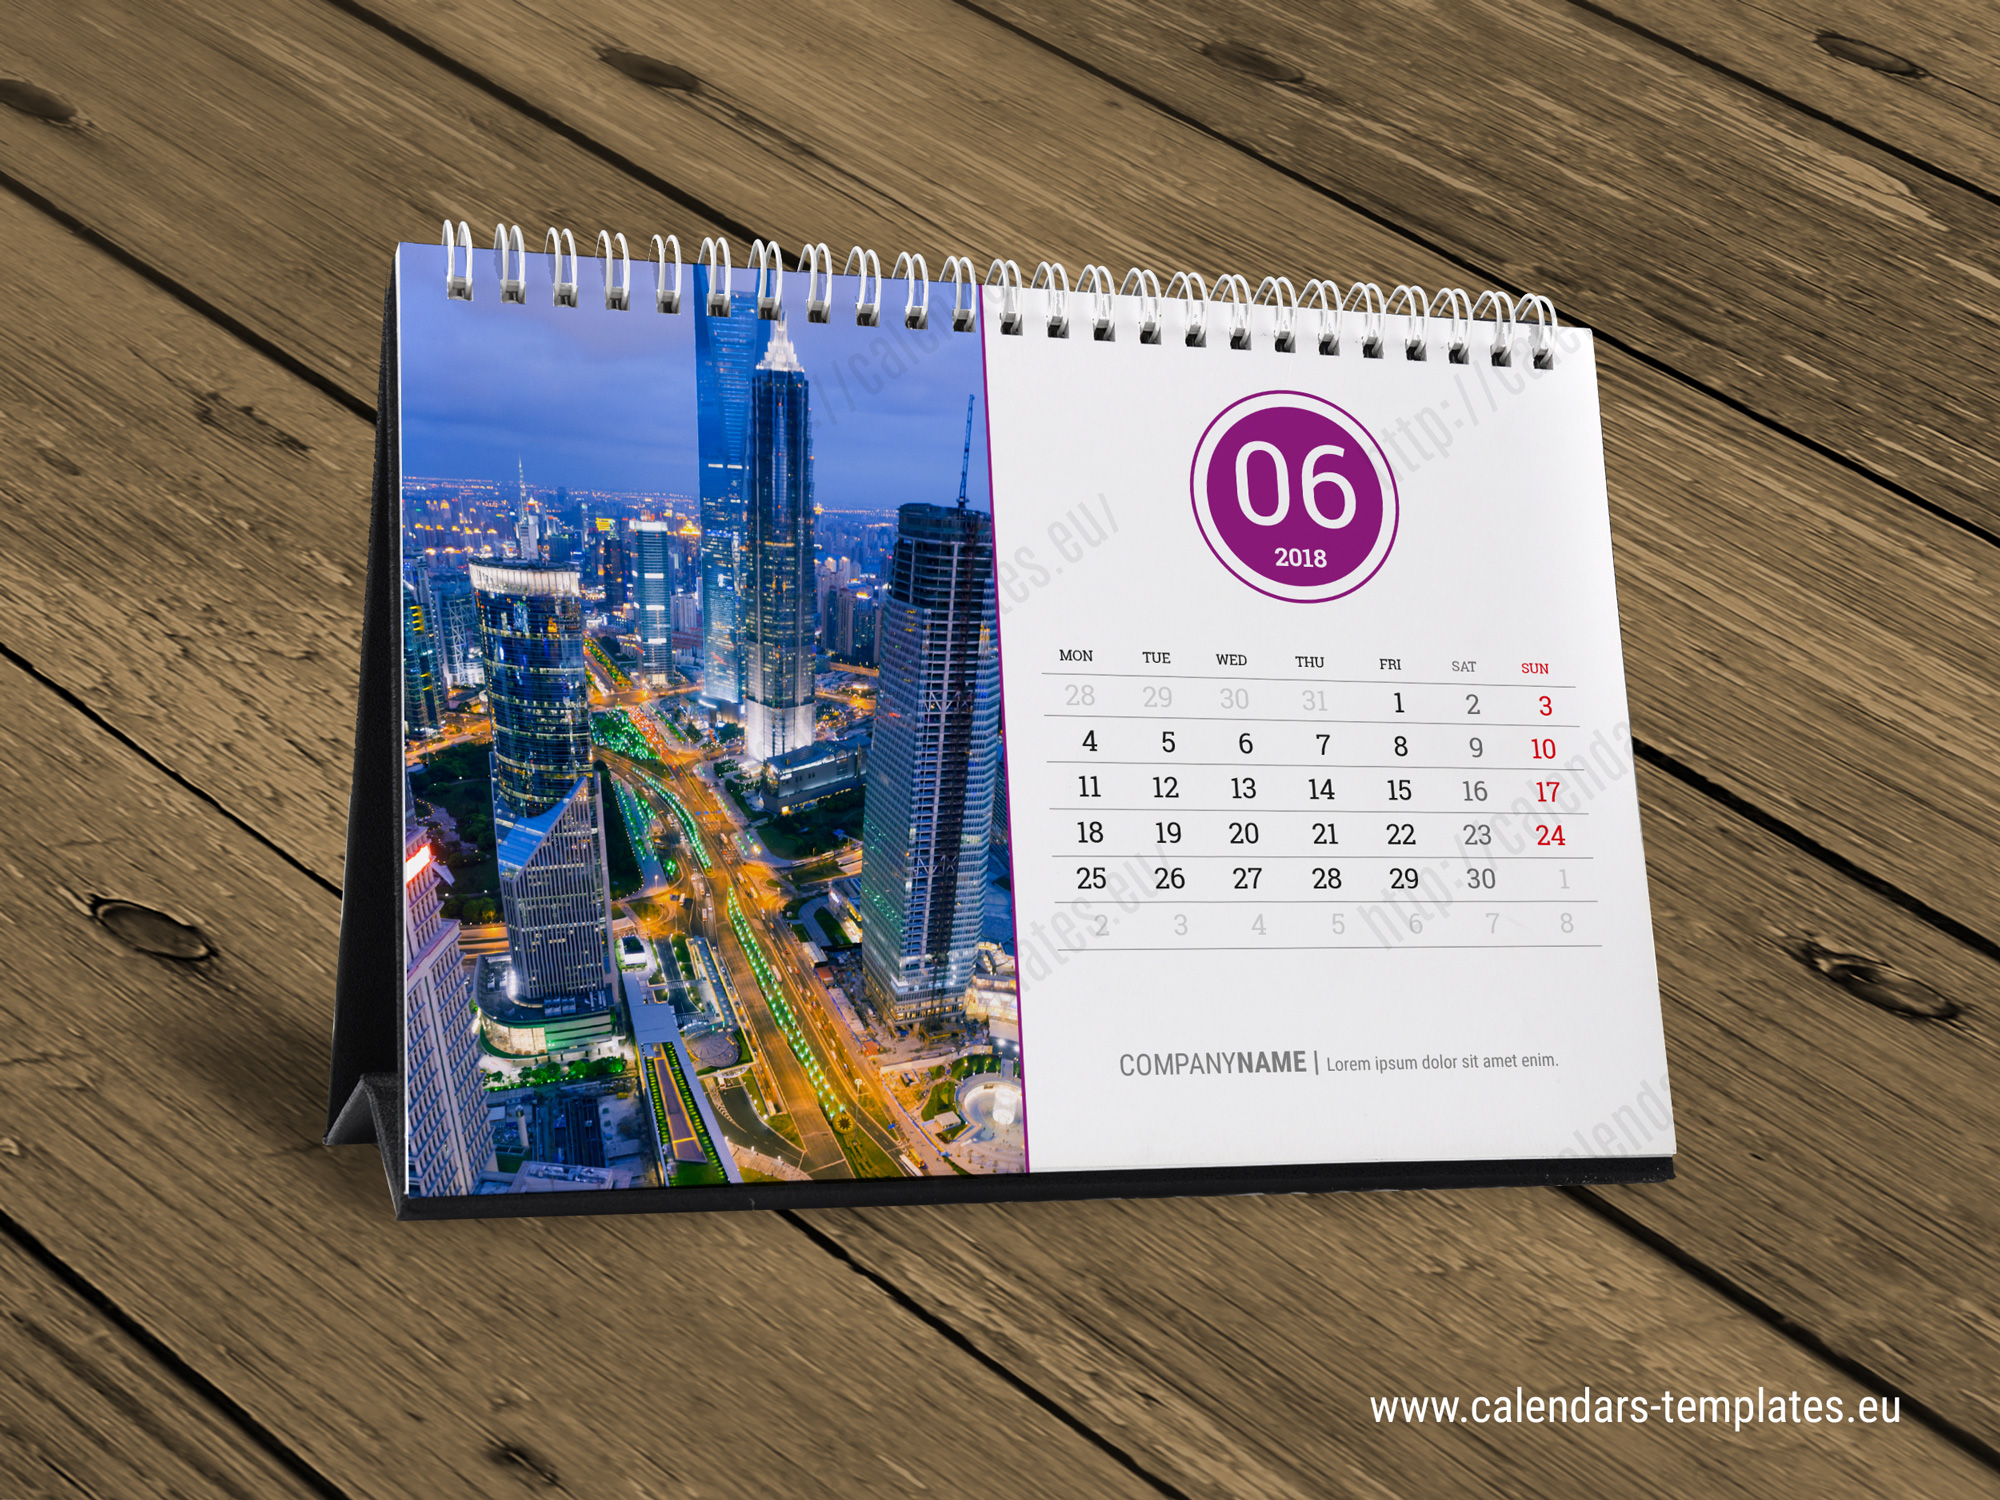 Table Calendar Design : Desk calendar kb w template